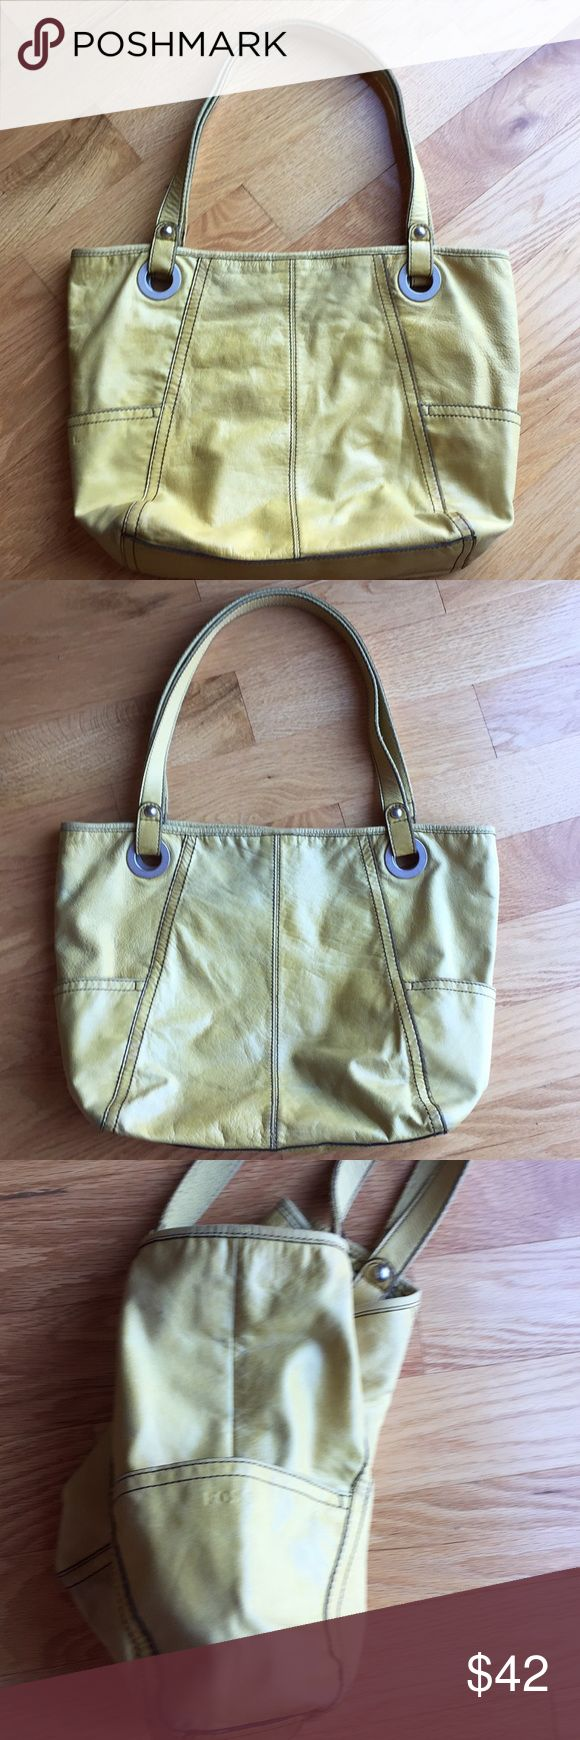 Fossil yellow shoulder bag Beautiful mustard yellow leather fossil purse. This purse has been used but has lots of life left in it. It is still in very good condition. It has a distressed look to it and silver hardware.It measures 17 inches across and 13 inches top to bottom. There is a zippered pocket on the inside as well as other pockets on the opposite side very roomy. A very unique color and rare to find! Please ask any questions! Fossil Bags Shoulder Bags